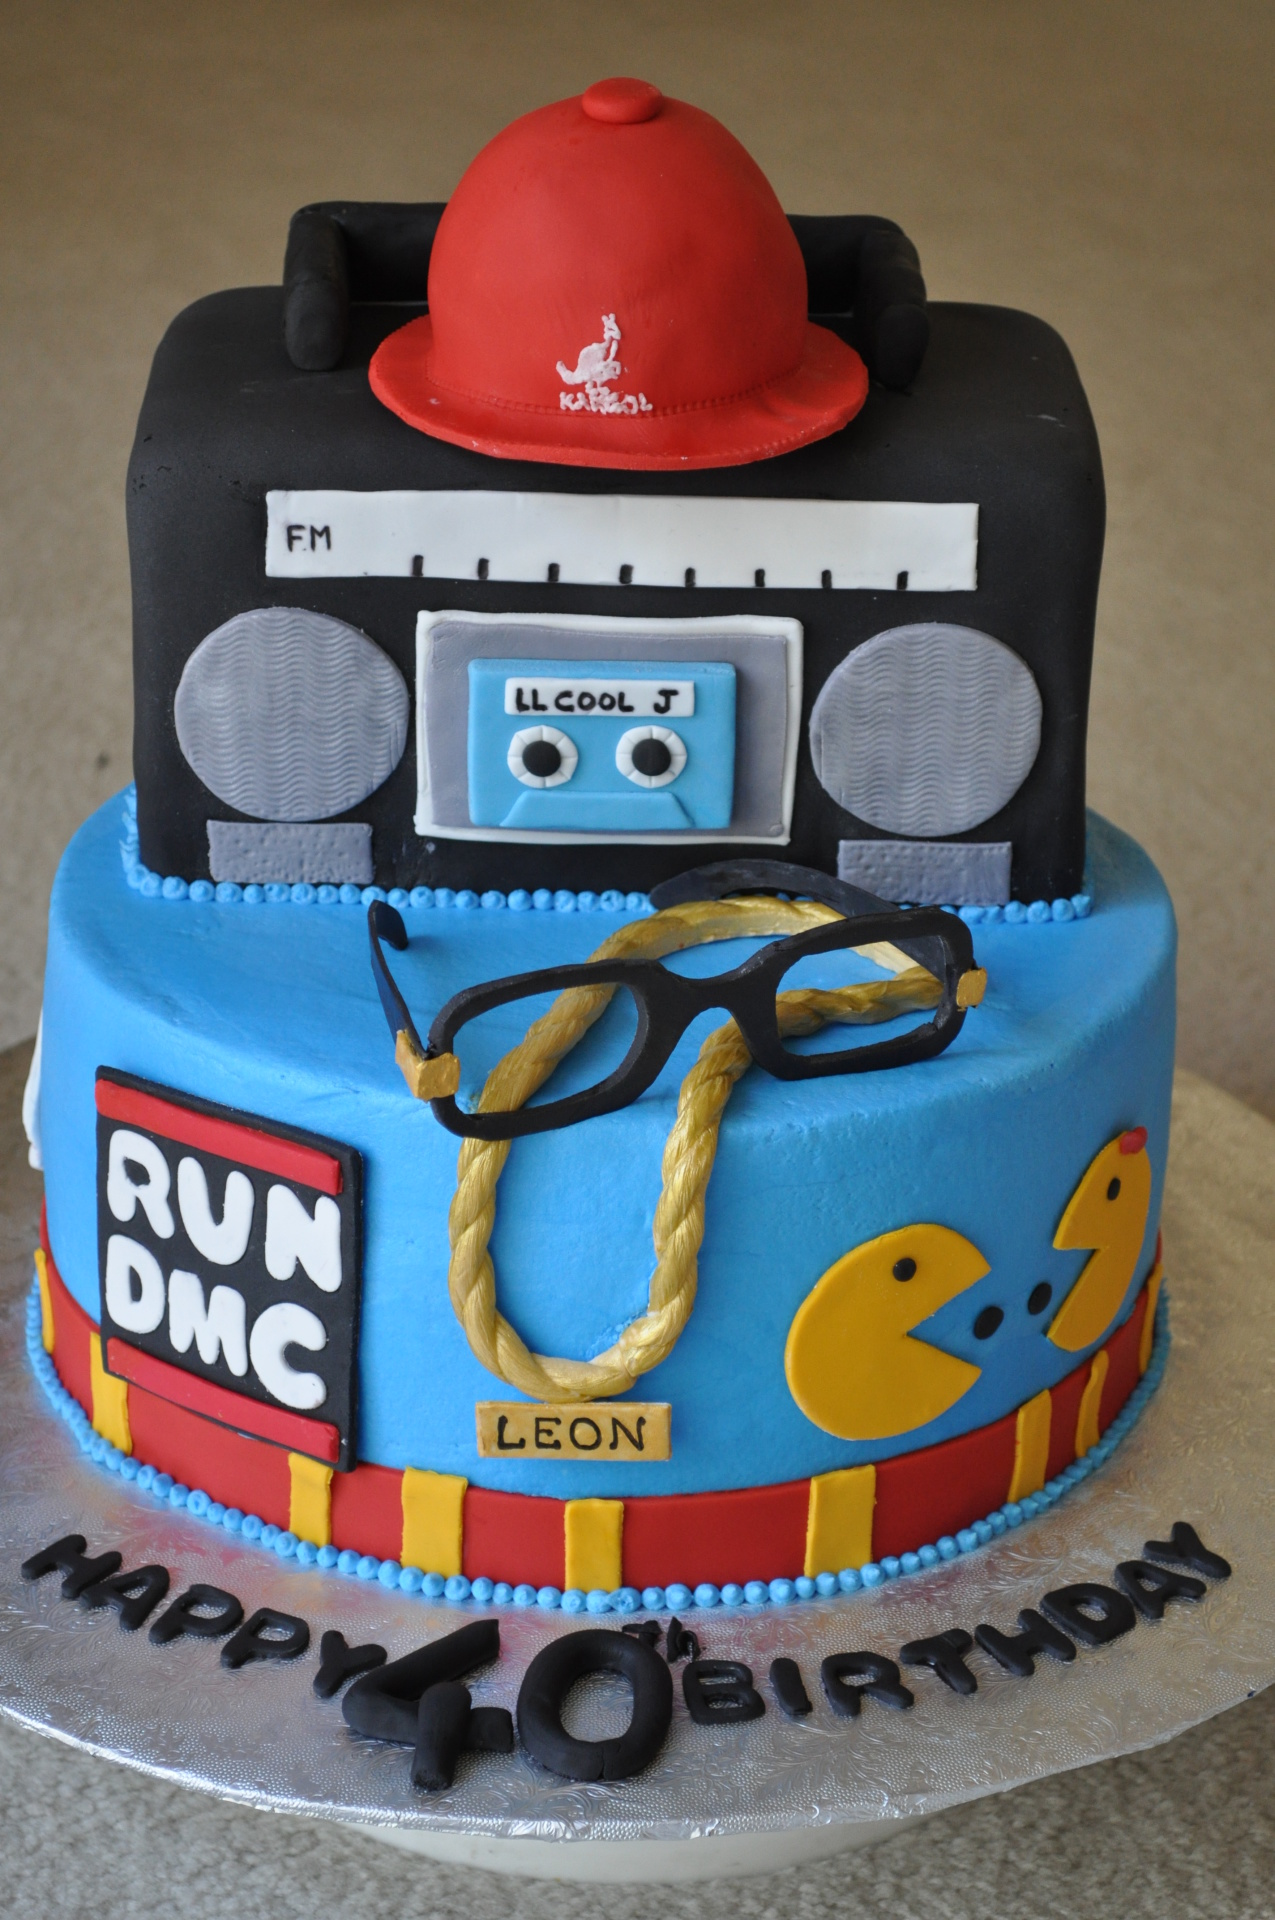 80s theme with boombox personalized cake